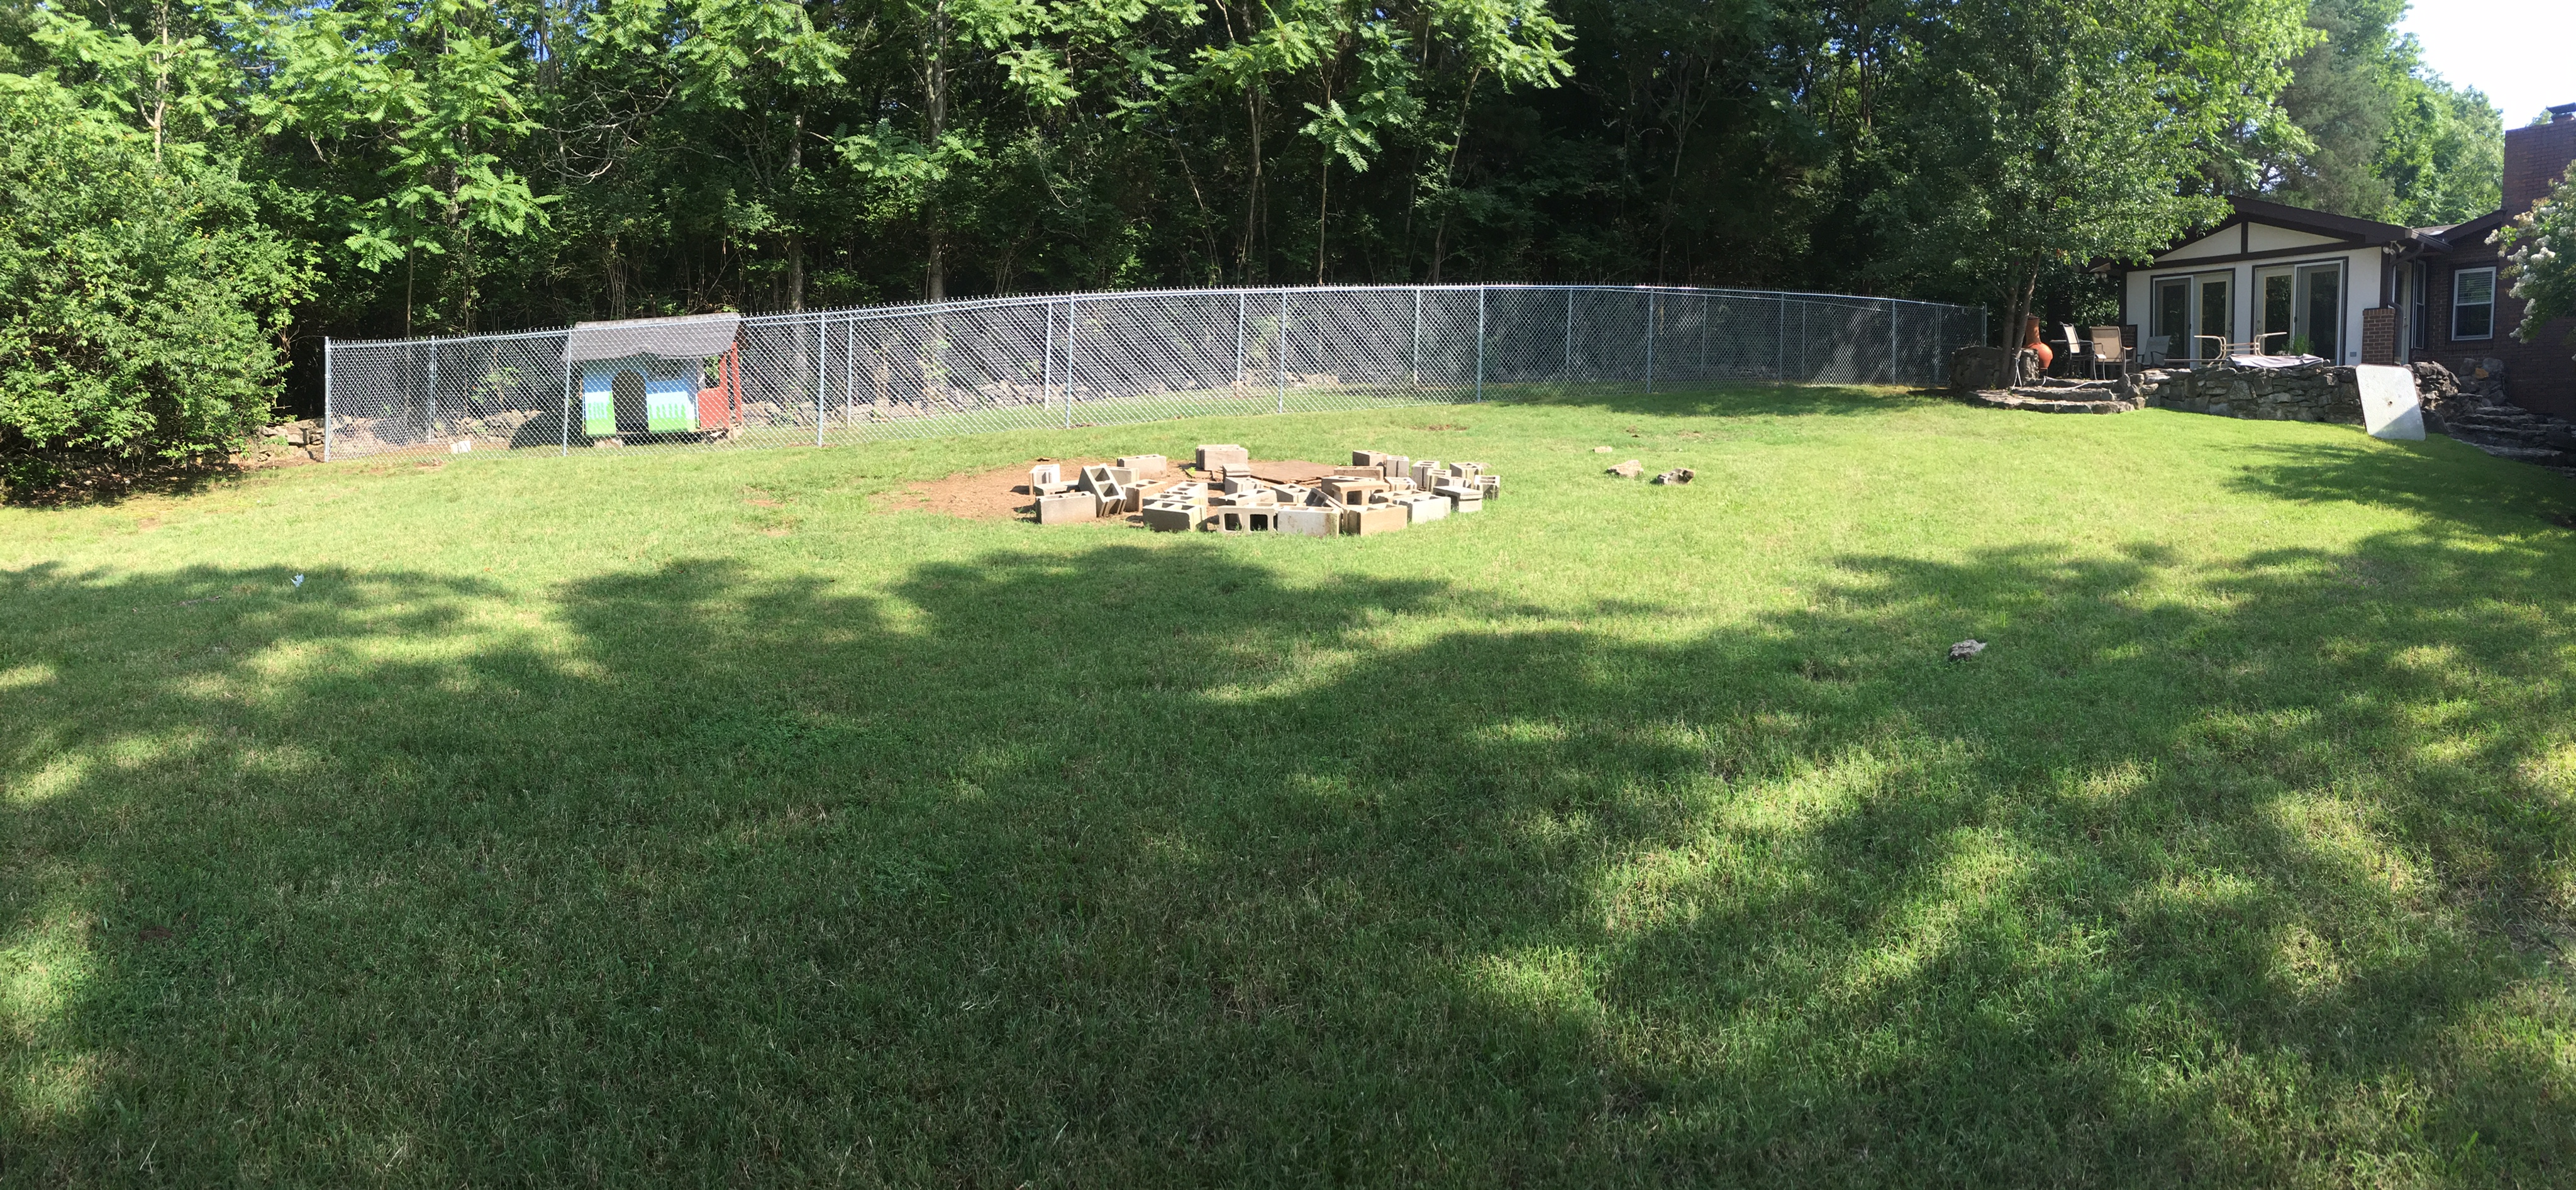 6ft Chain Link Dog Run Fence